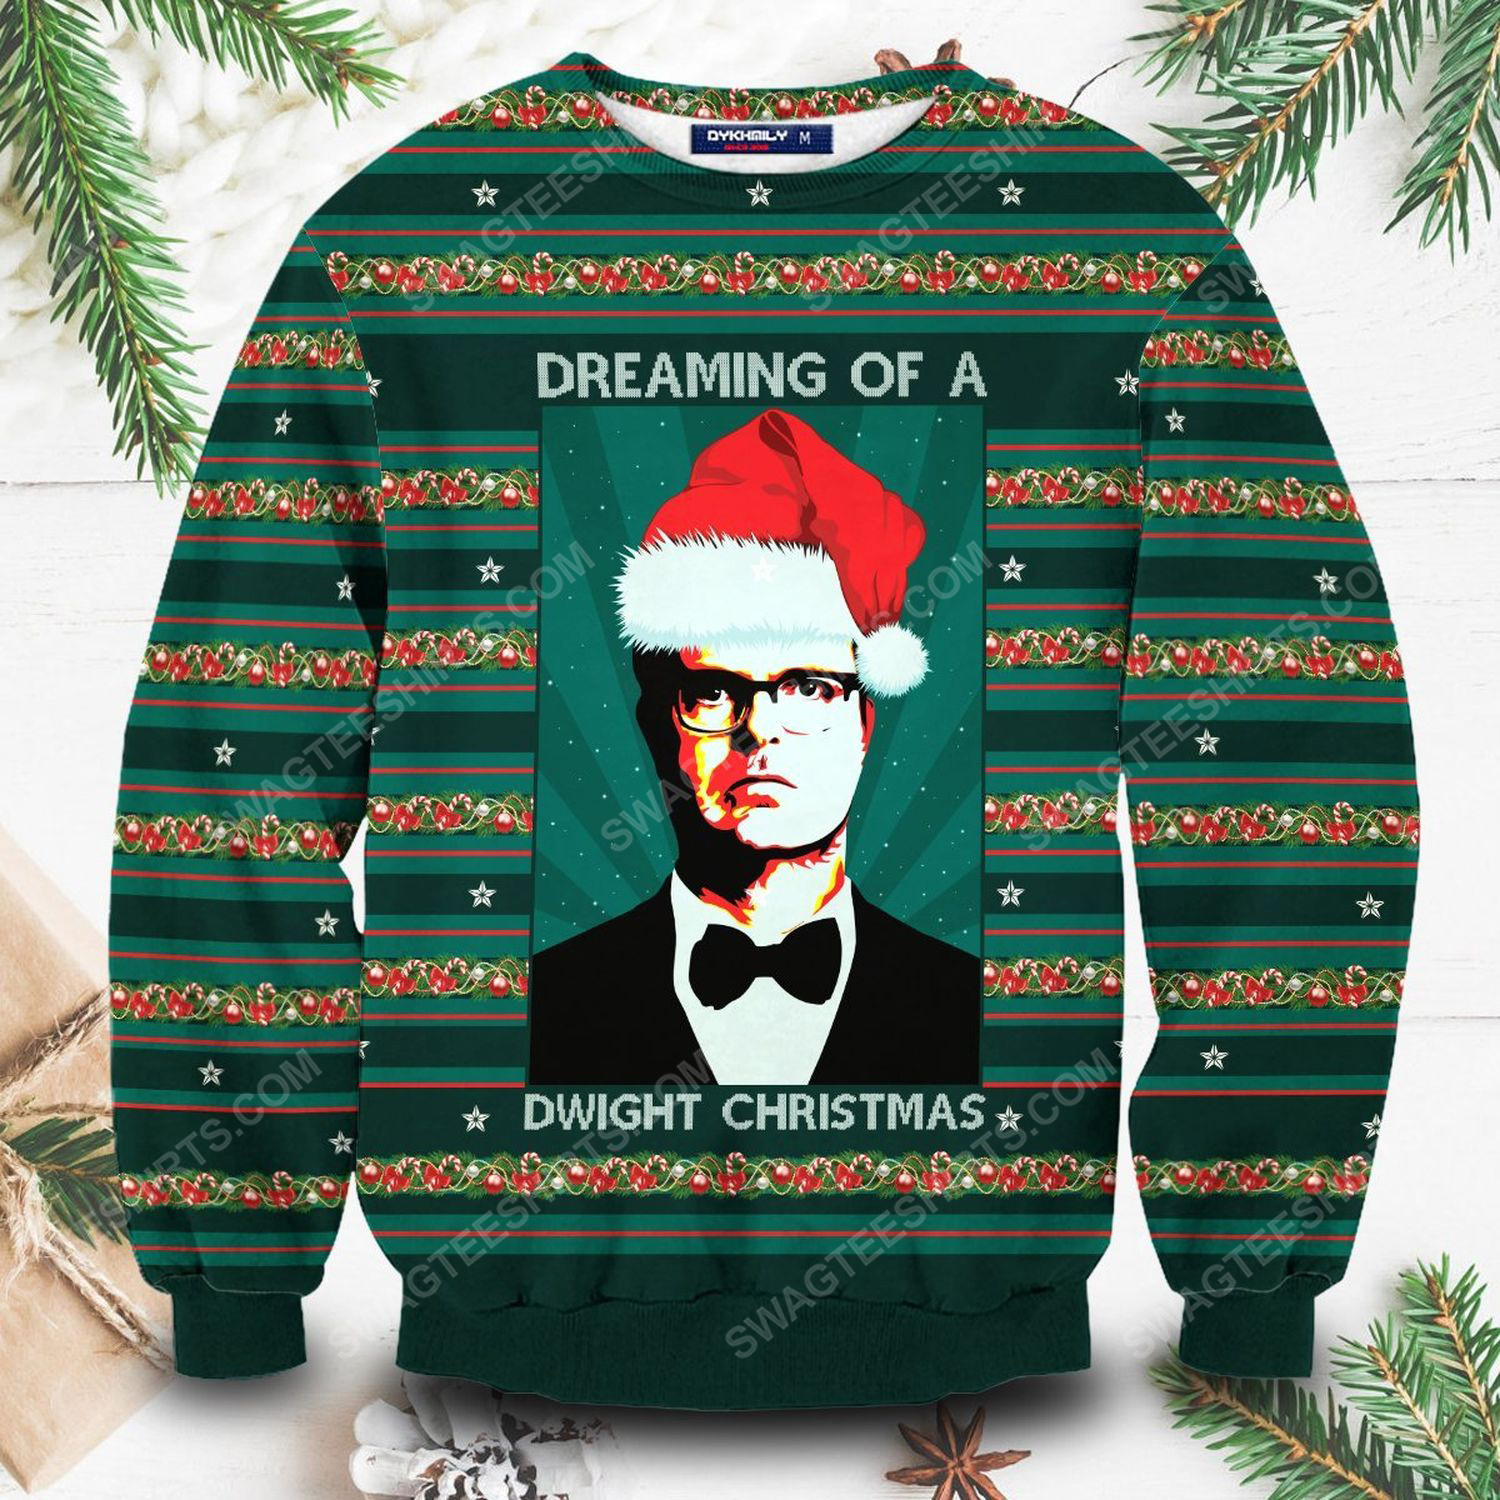 The office dreaming of a dwight christmas ugly christmas sweater